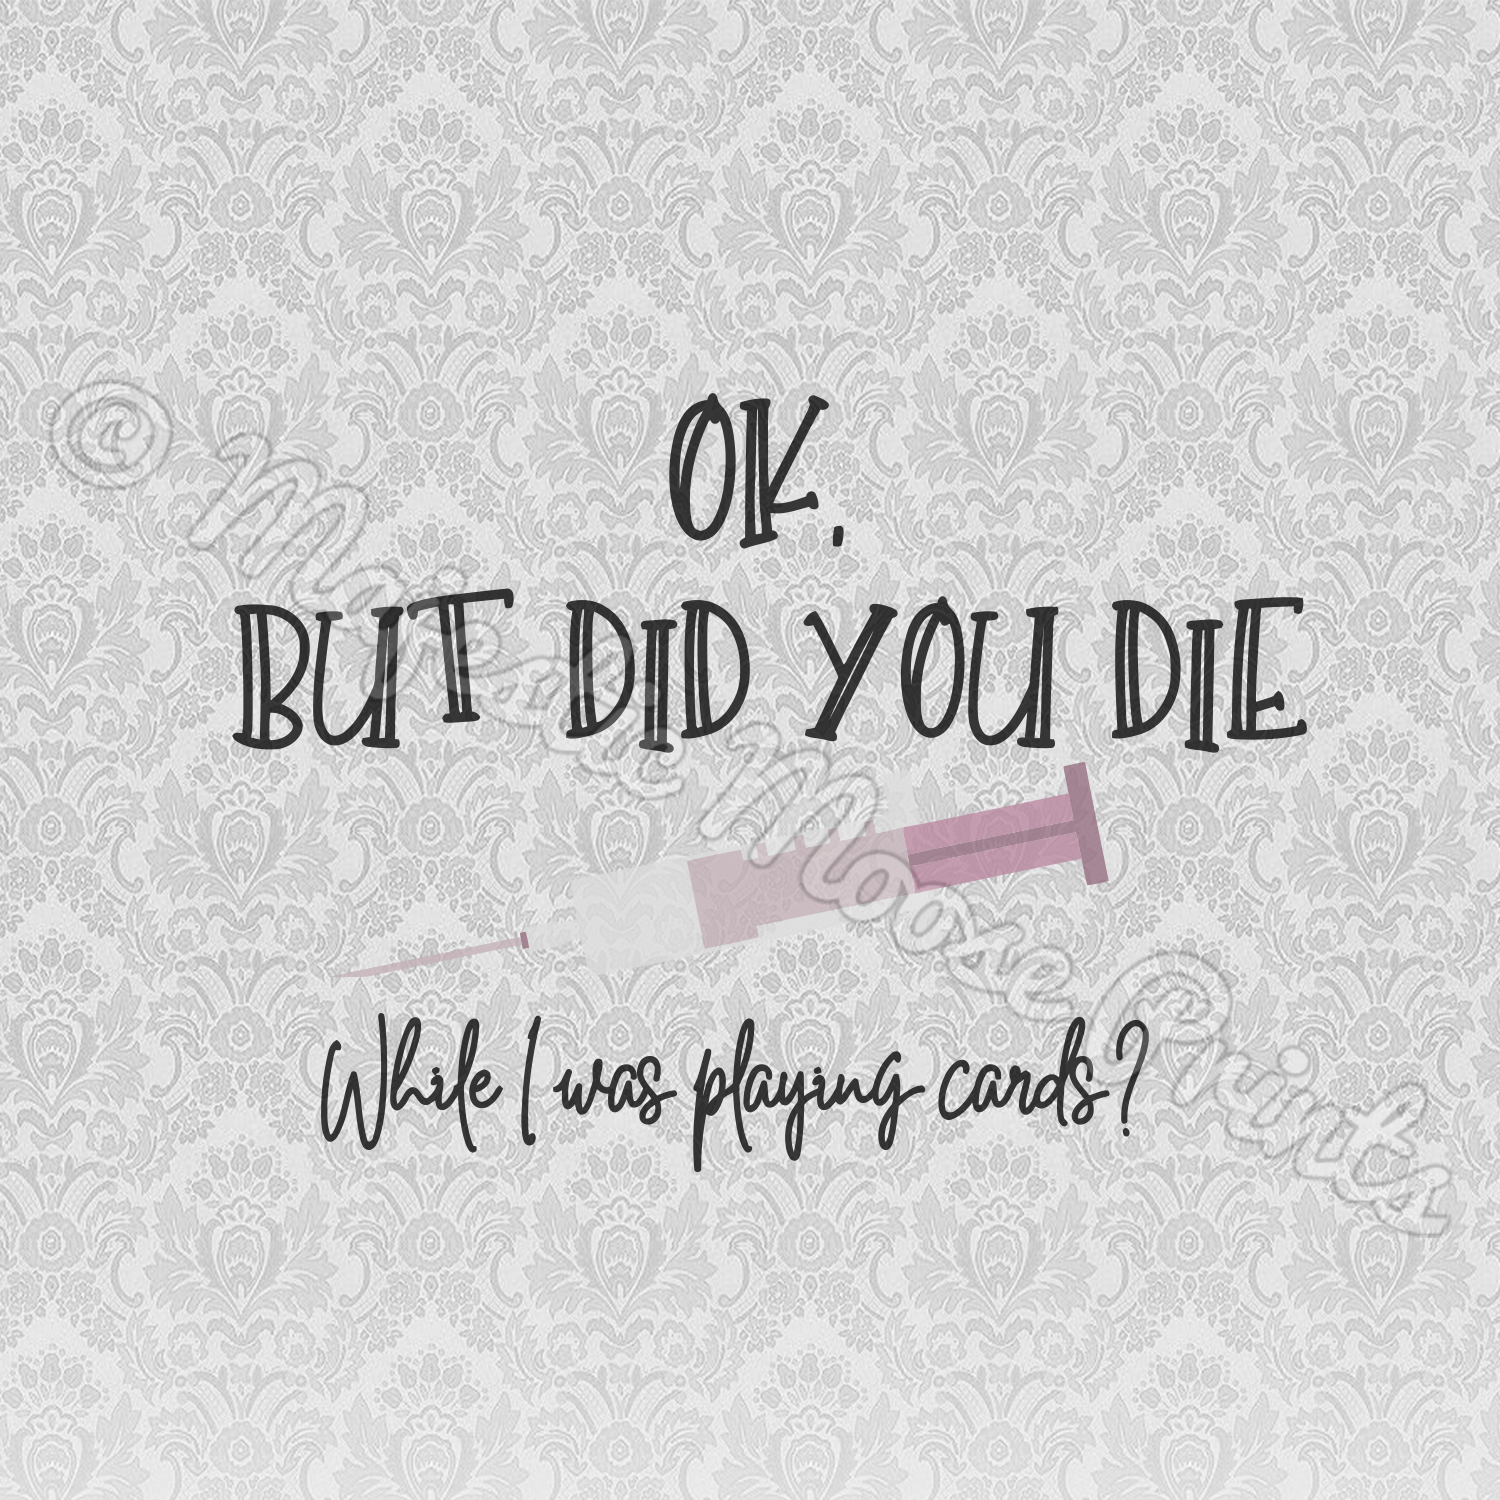 But Did You Die? SVG - Funny Nurse Quote - Majestic Moose Prints